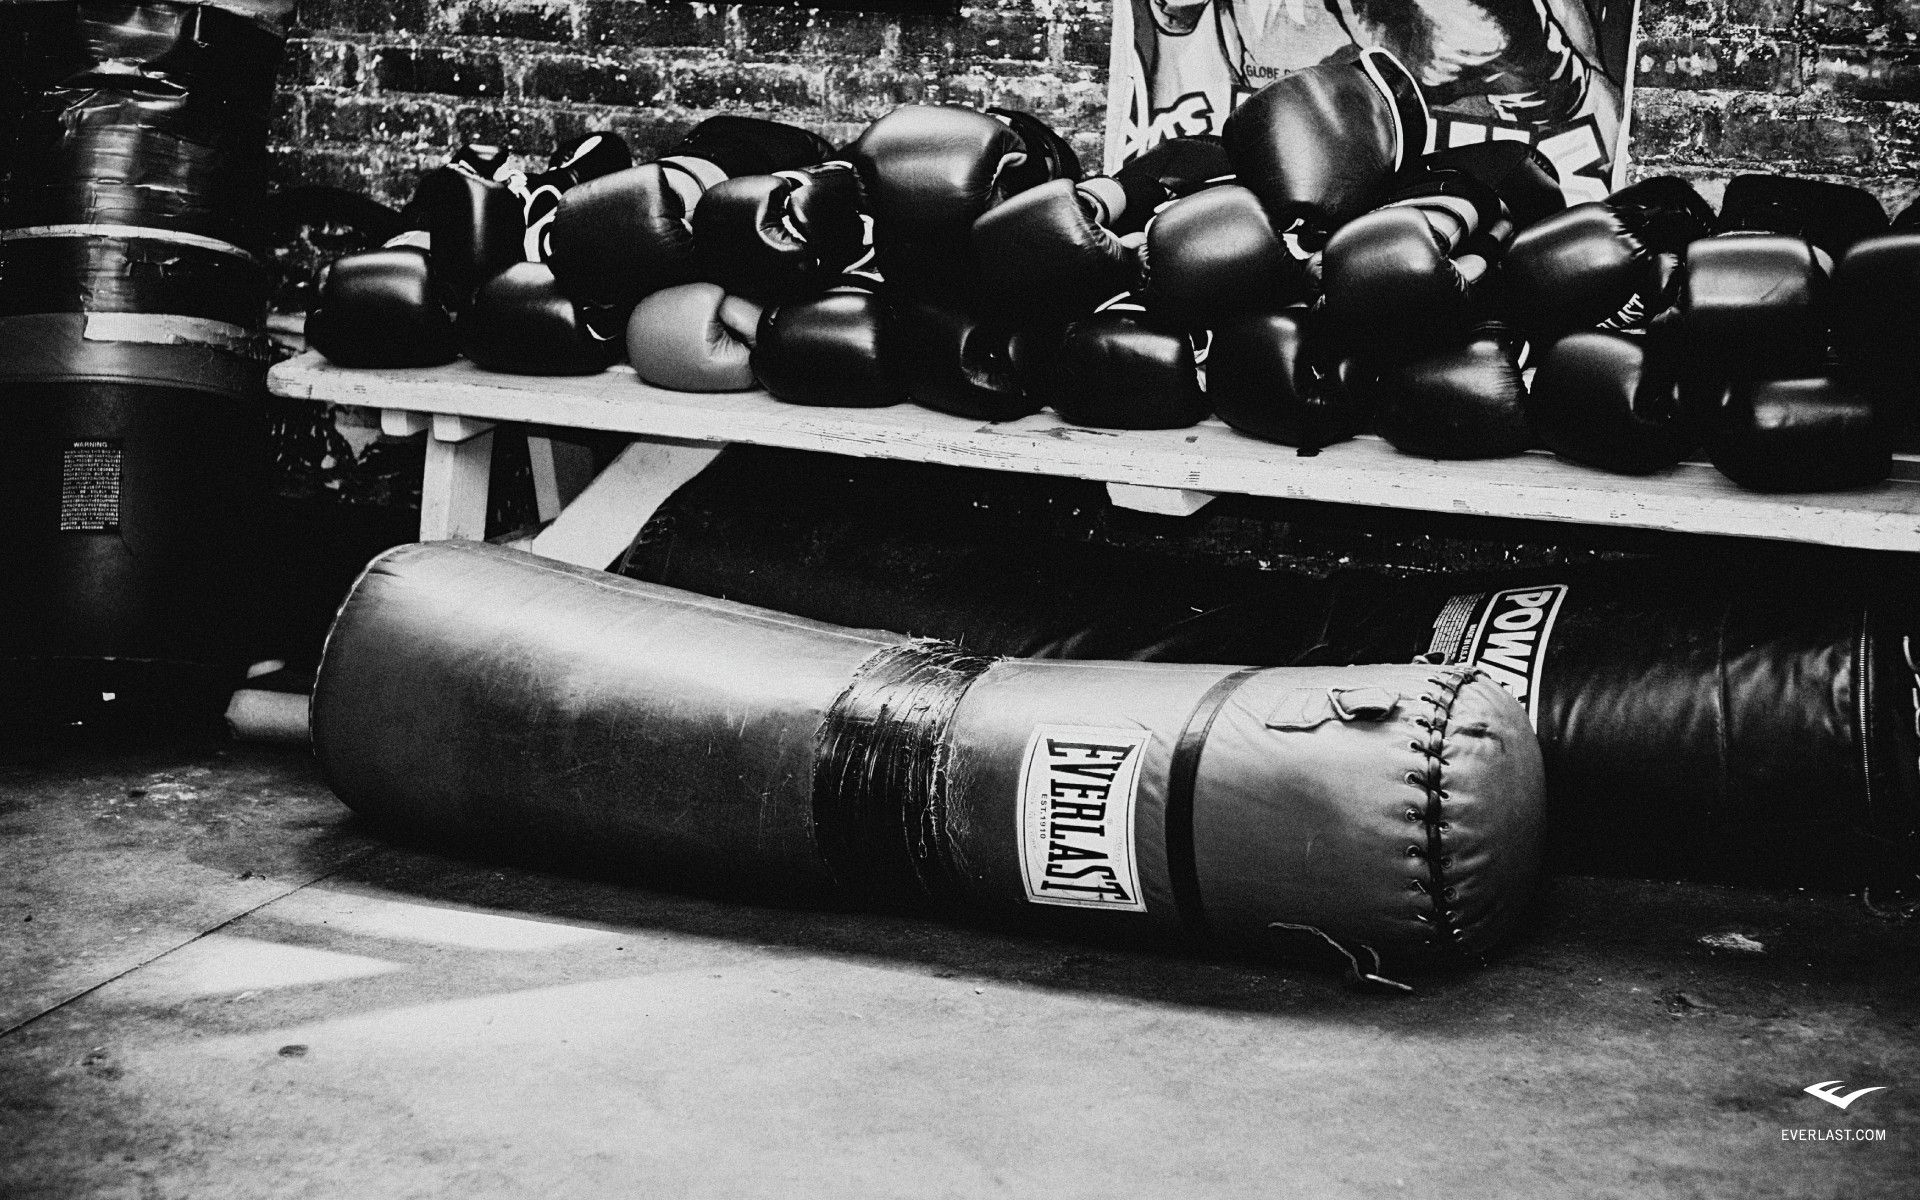 Everlast Boxing Wallpaper